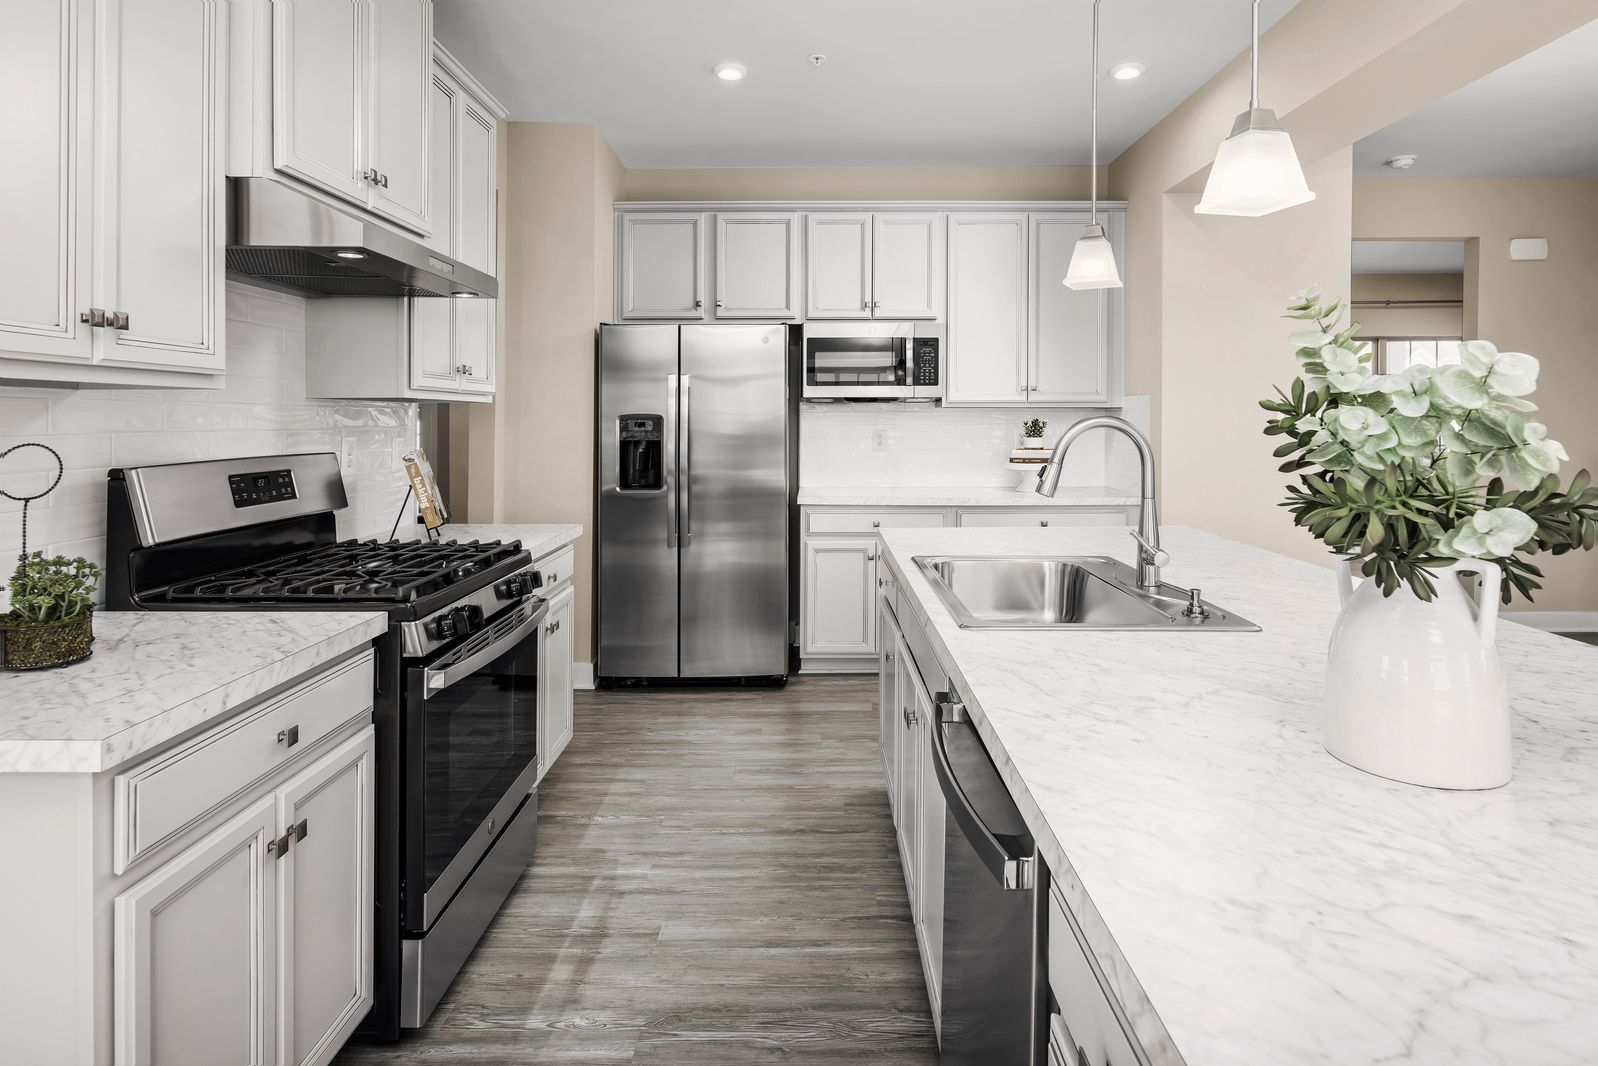 Kitchen featured in the Columbia w/ Optional Finished Basement By Ryan Homes in Chicago, IL